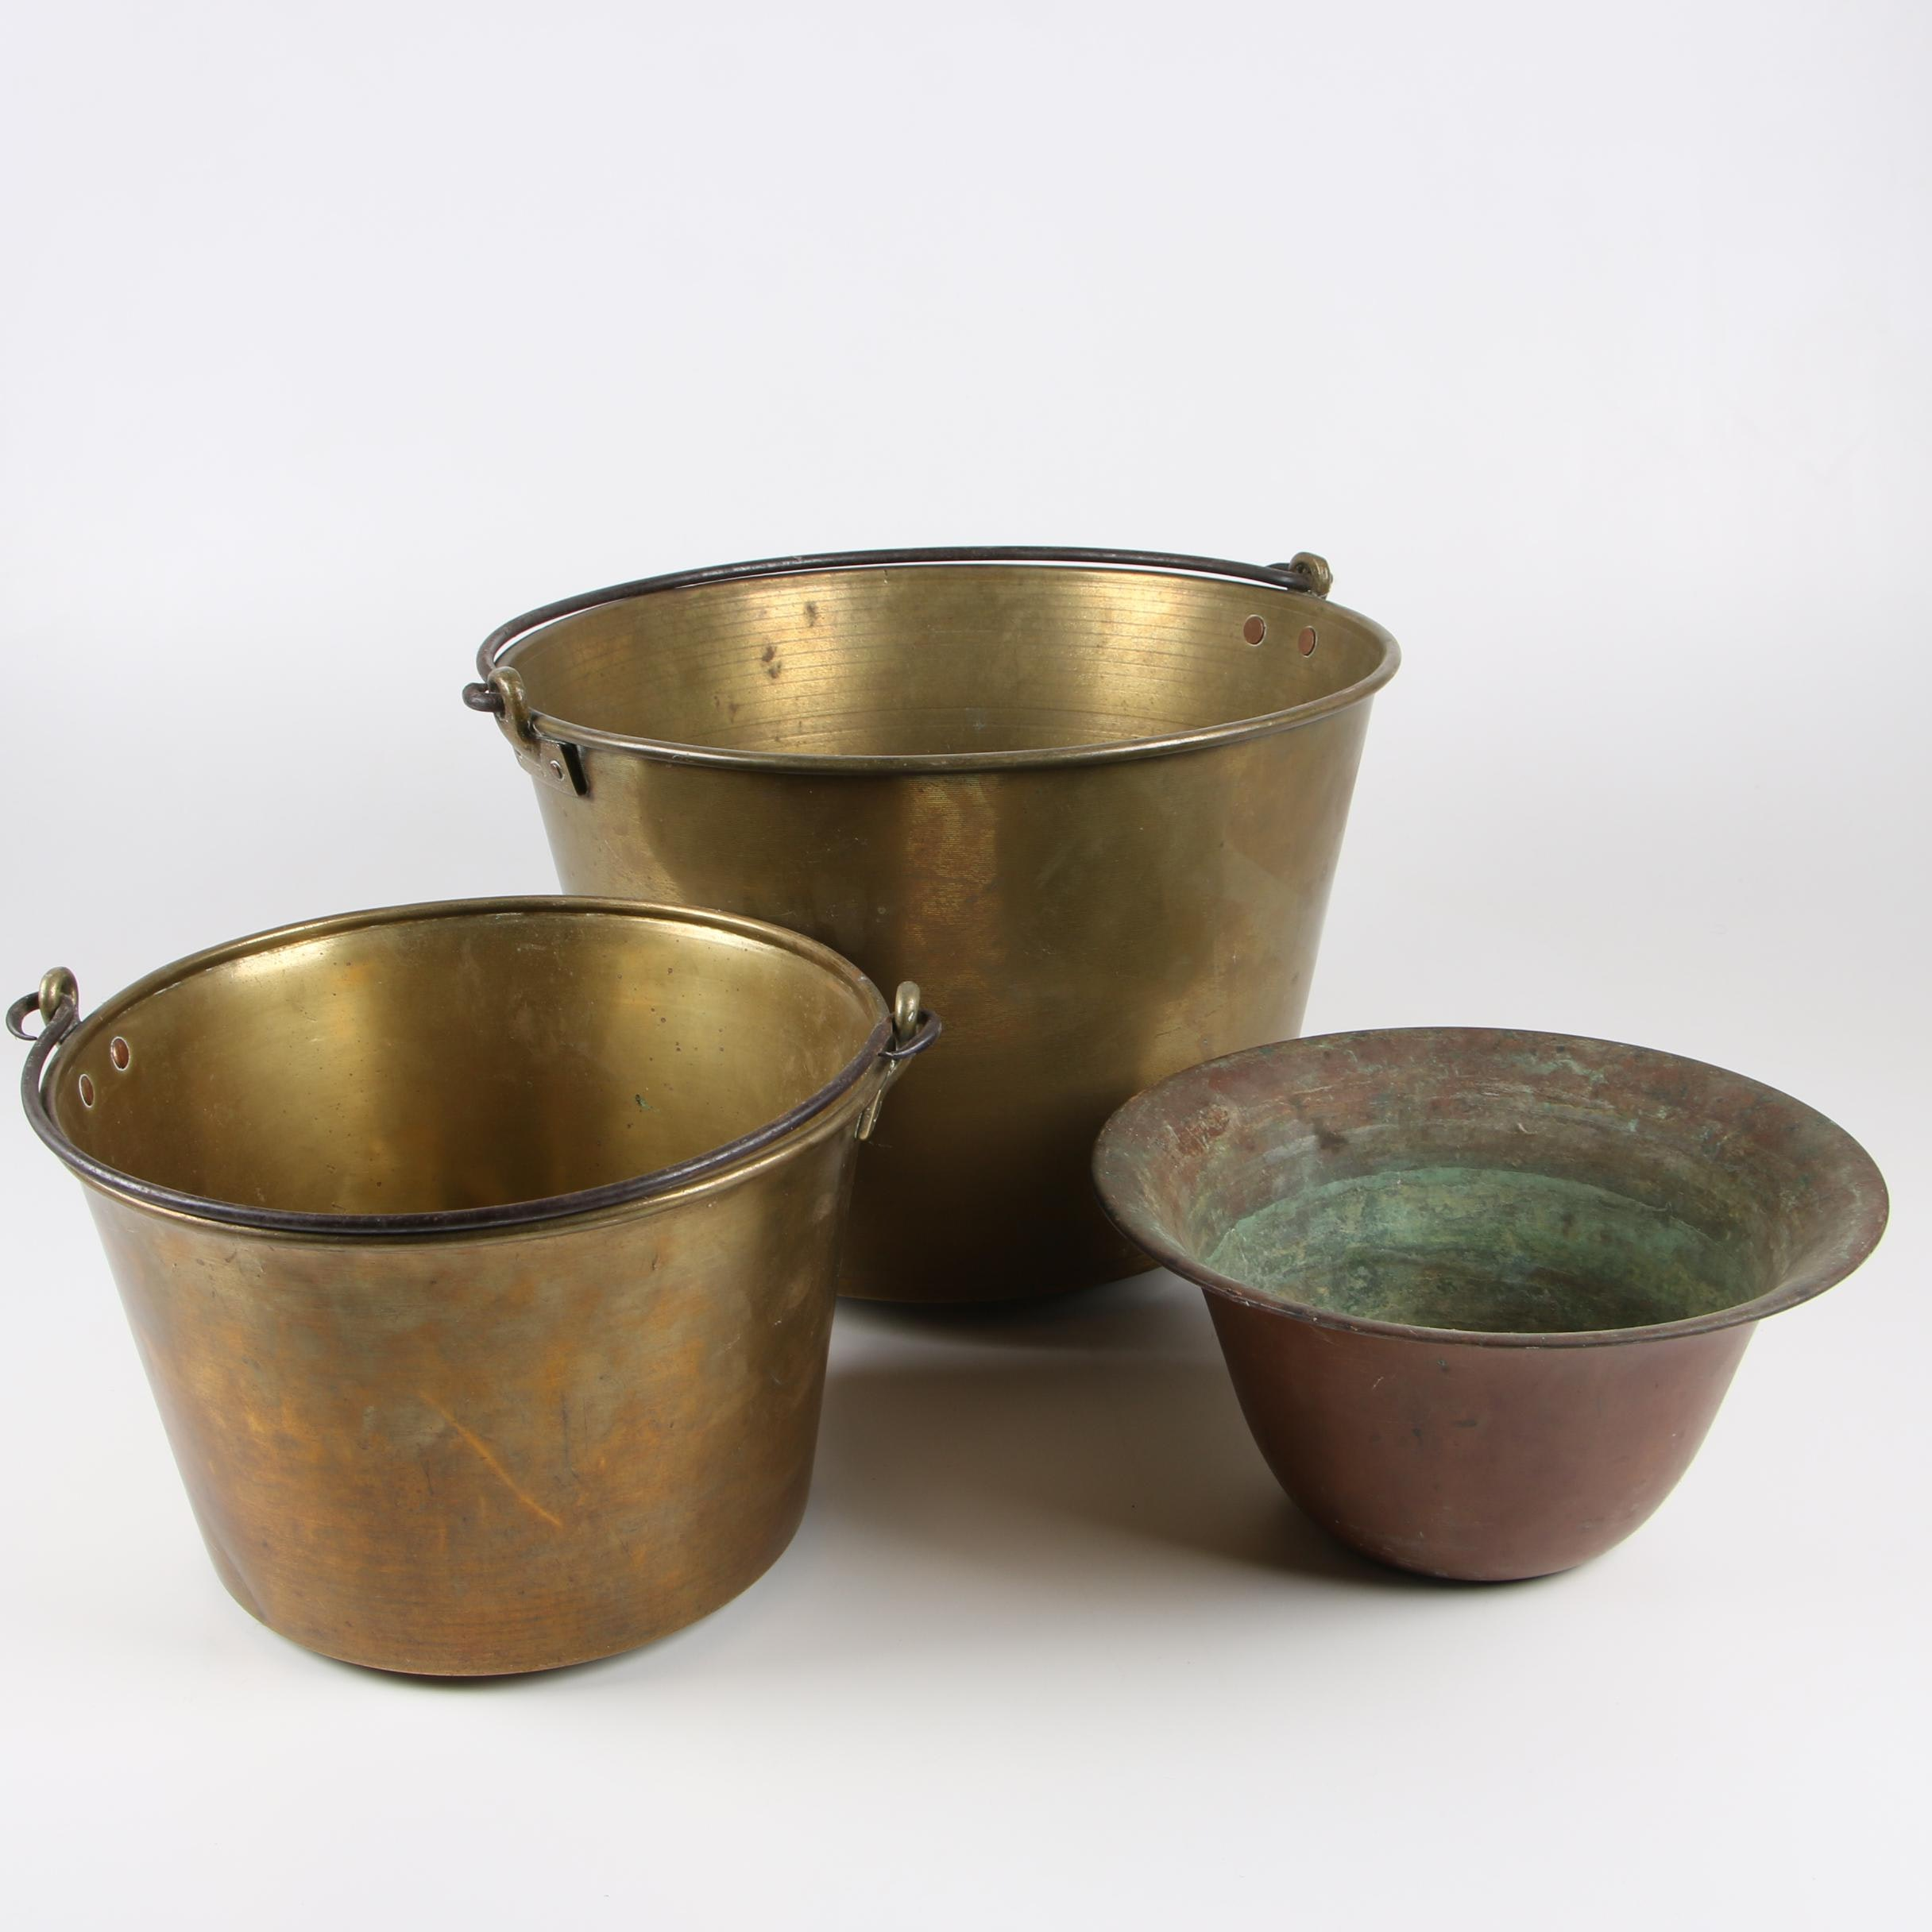 Brass and Copper Pots featuring Hiram W. Hayden